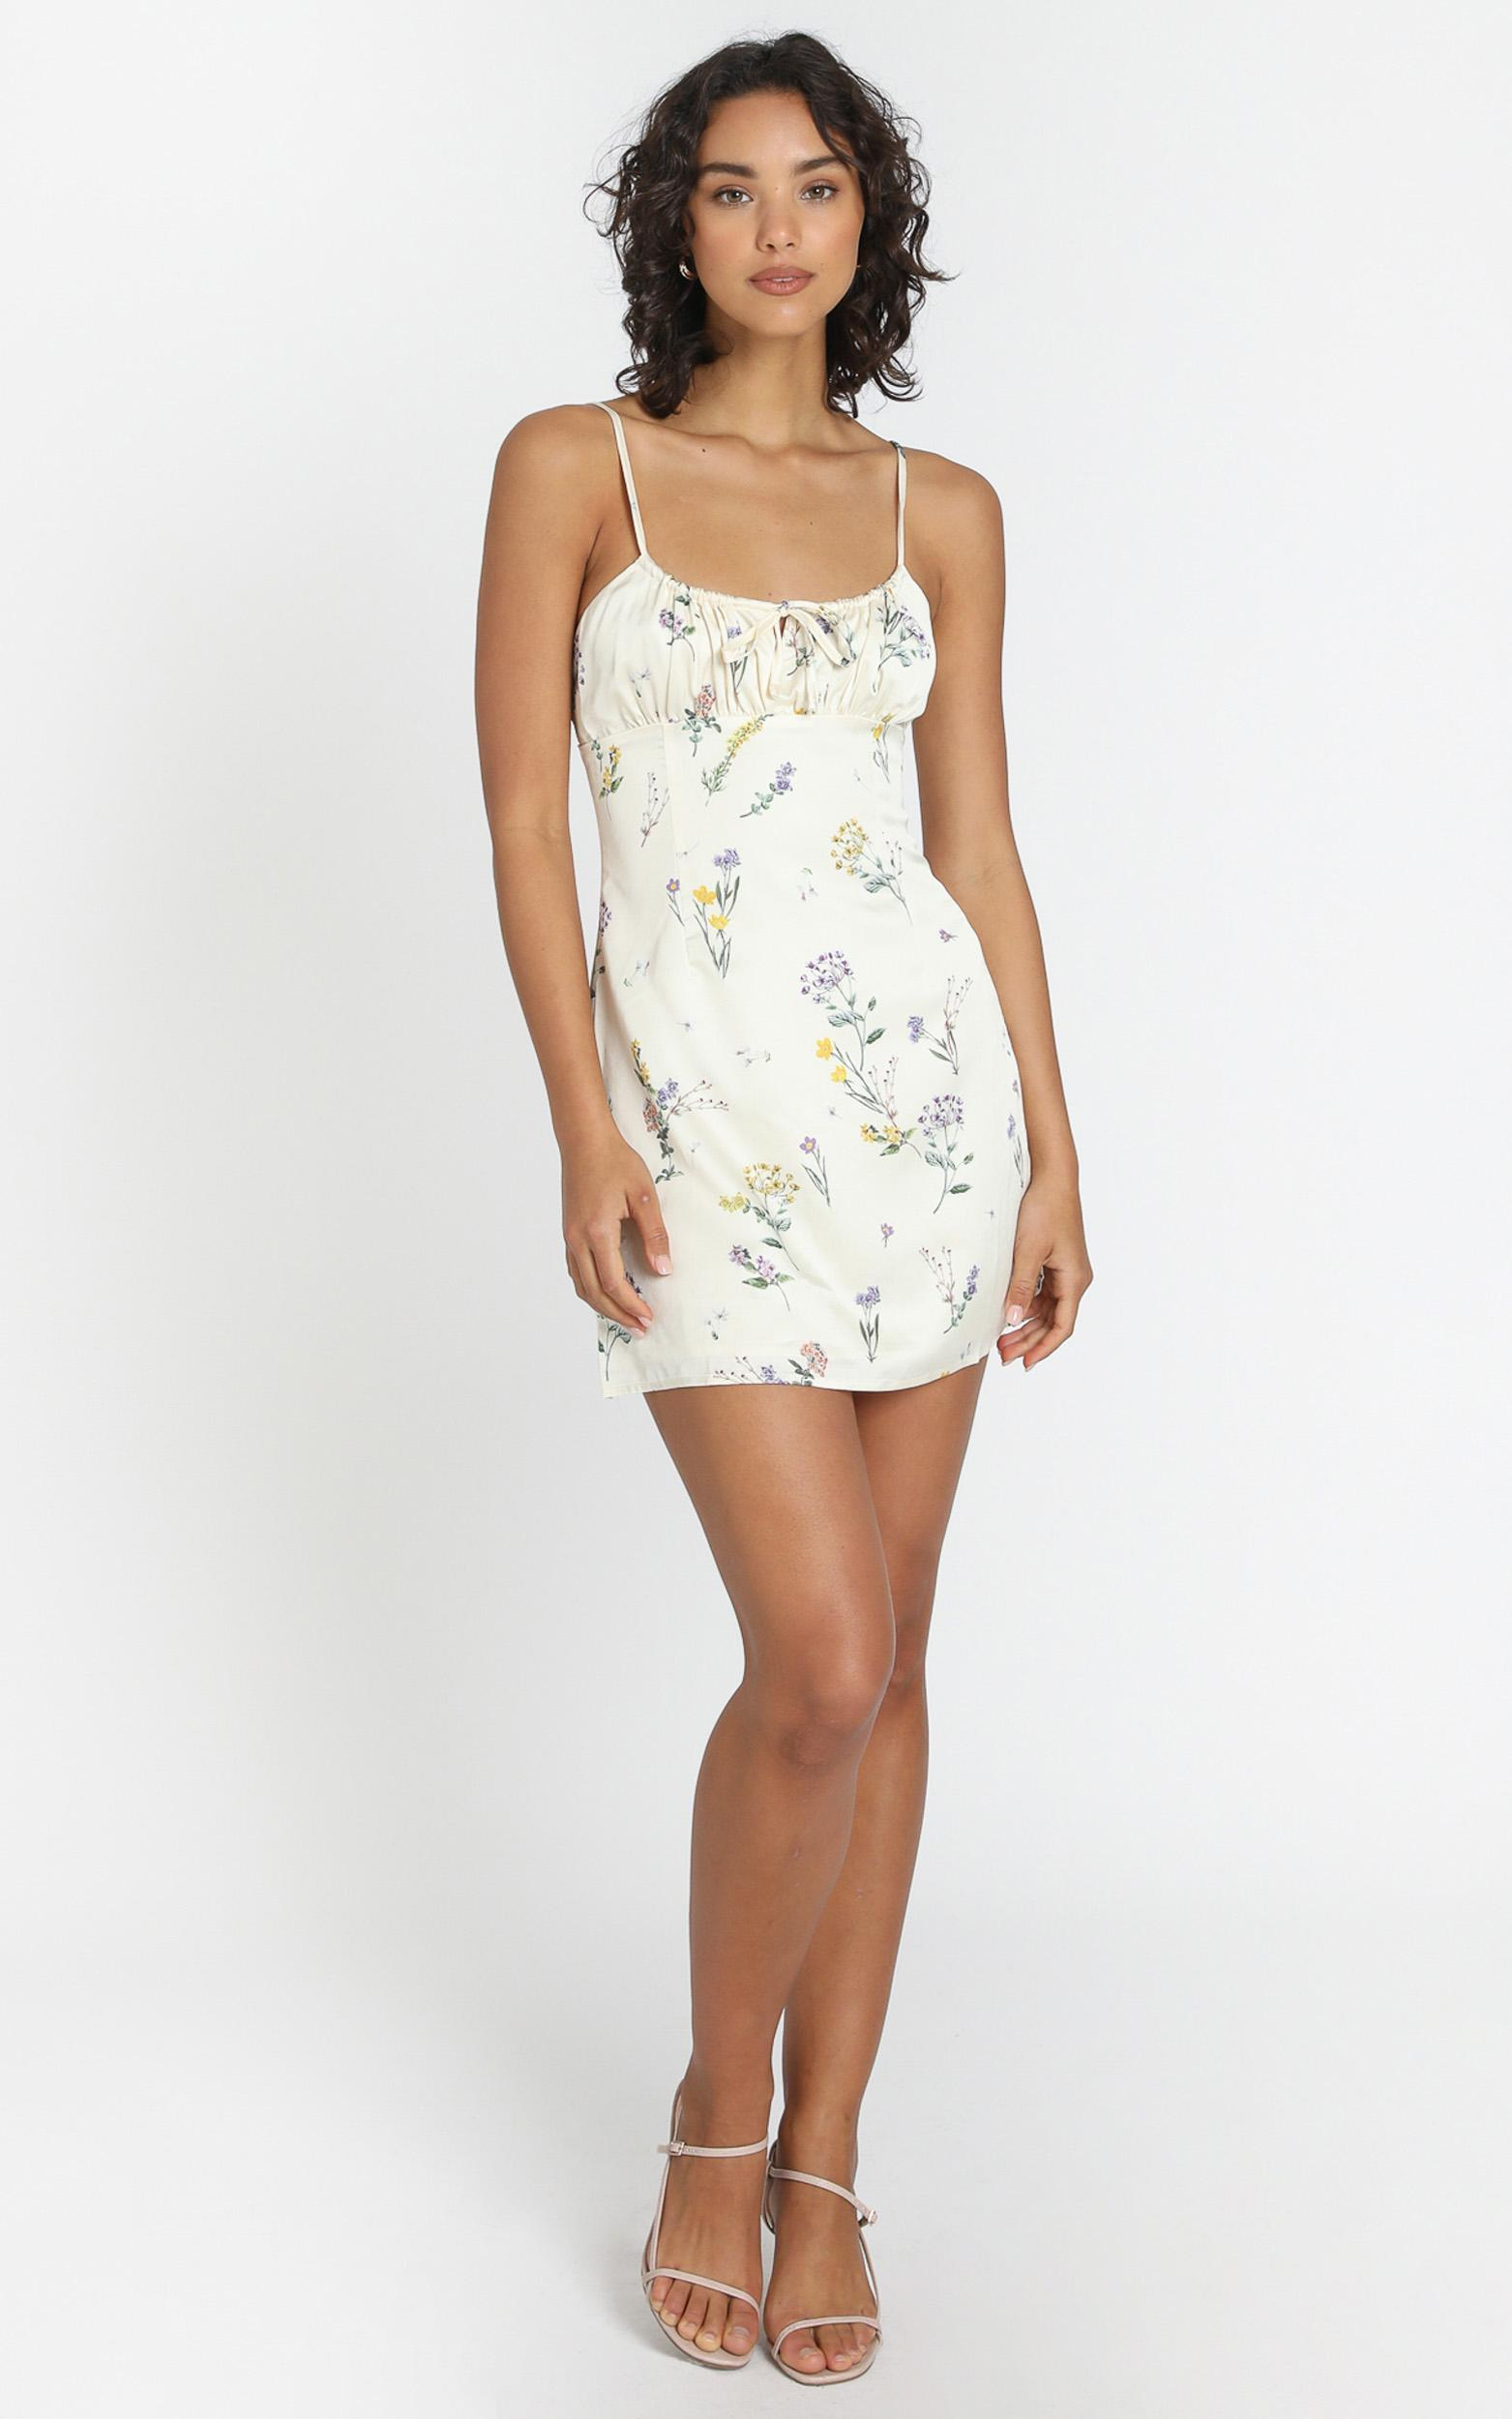 Ive Got You Now Dress in Botanical Floral  - 4 (XXS), Multi, hi-res image number null